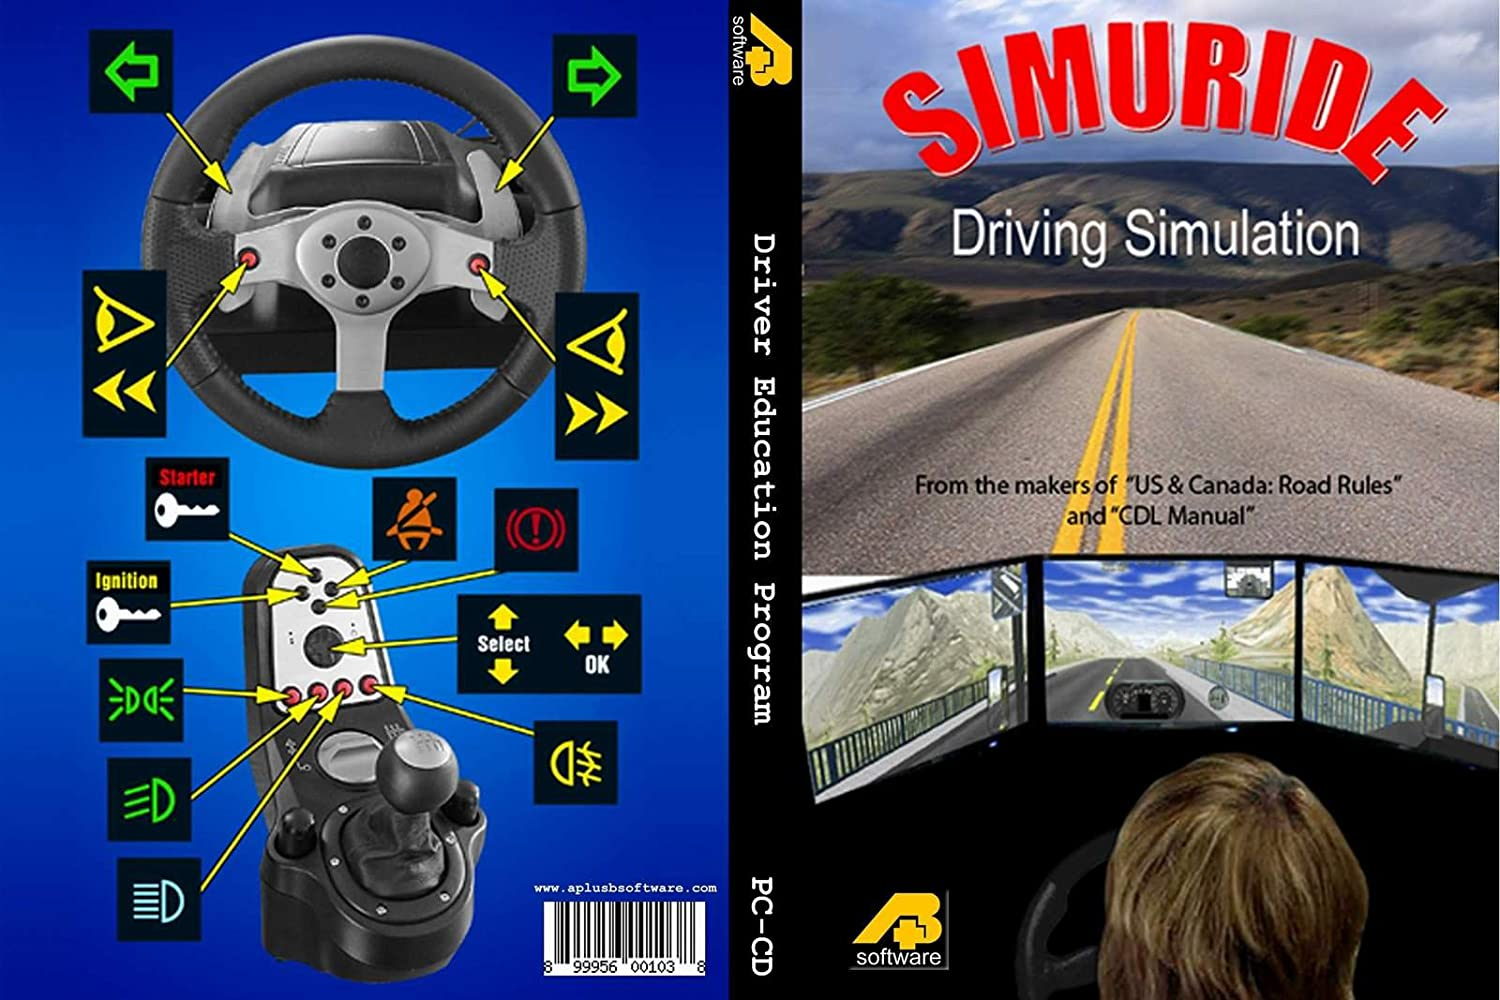 Amazon.com: Driving Simulator - SIMURIDE for car/bus/truck manual/automatic  transmission: Video Games